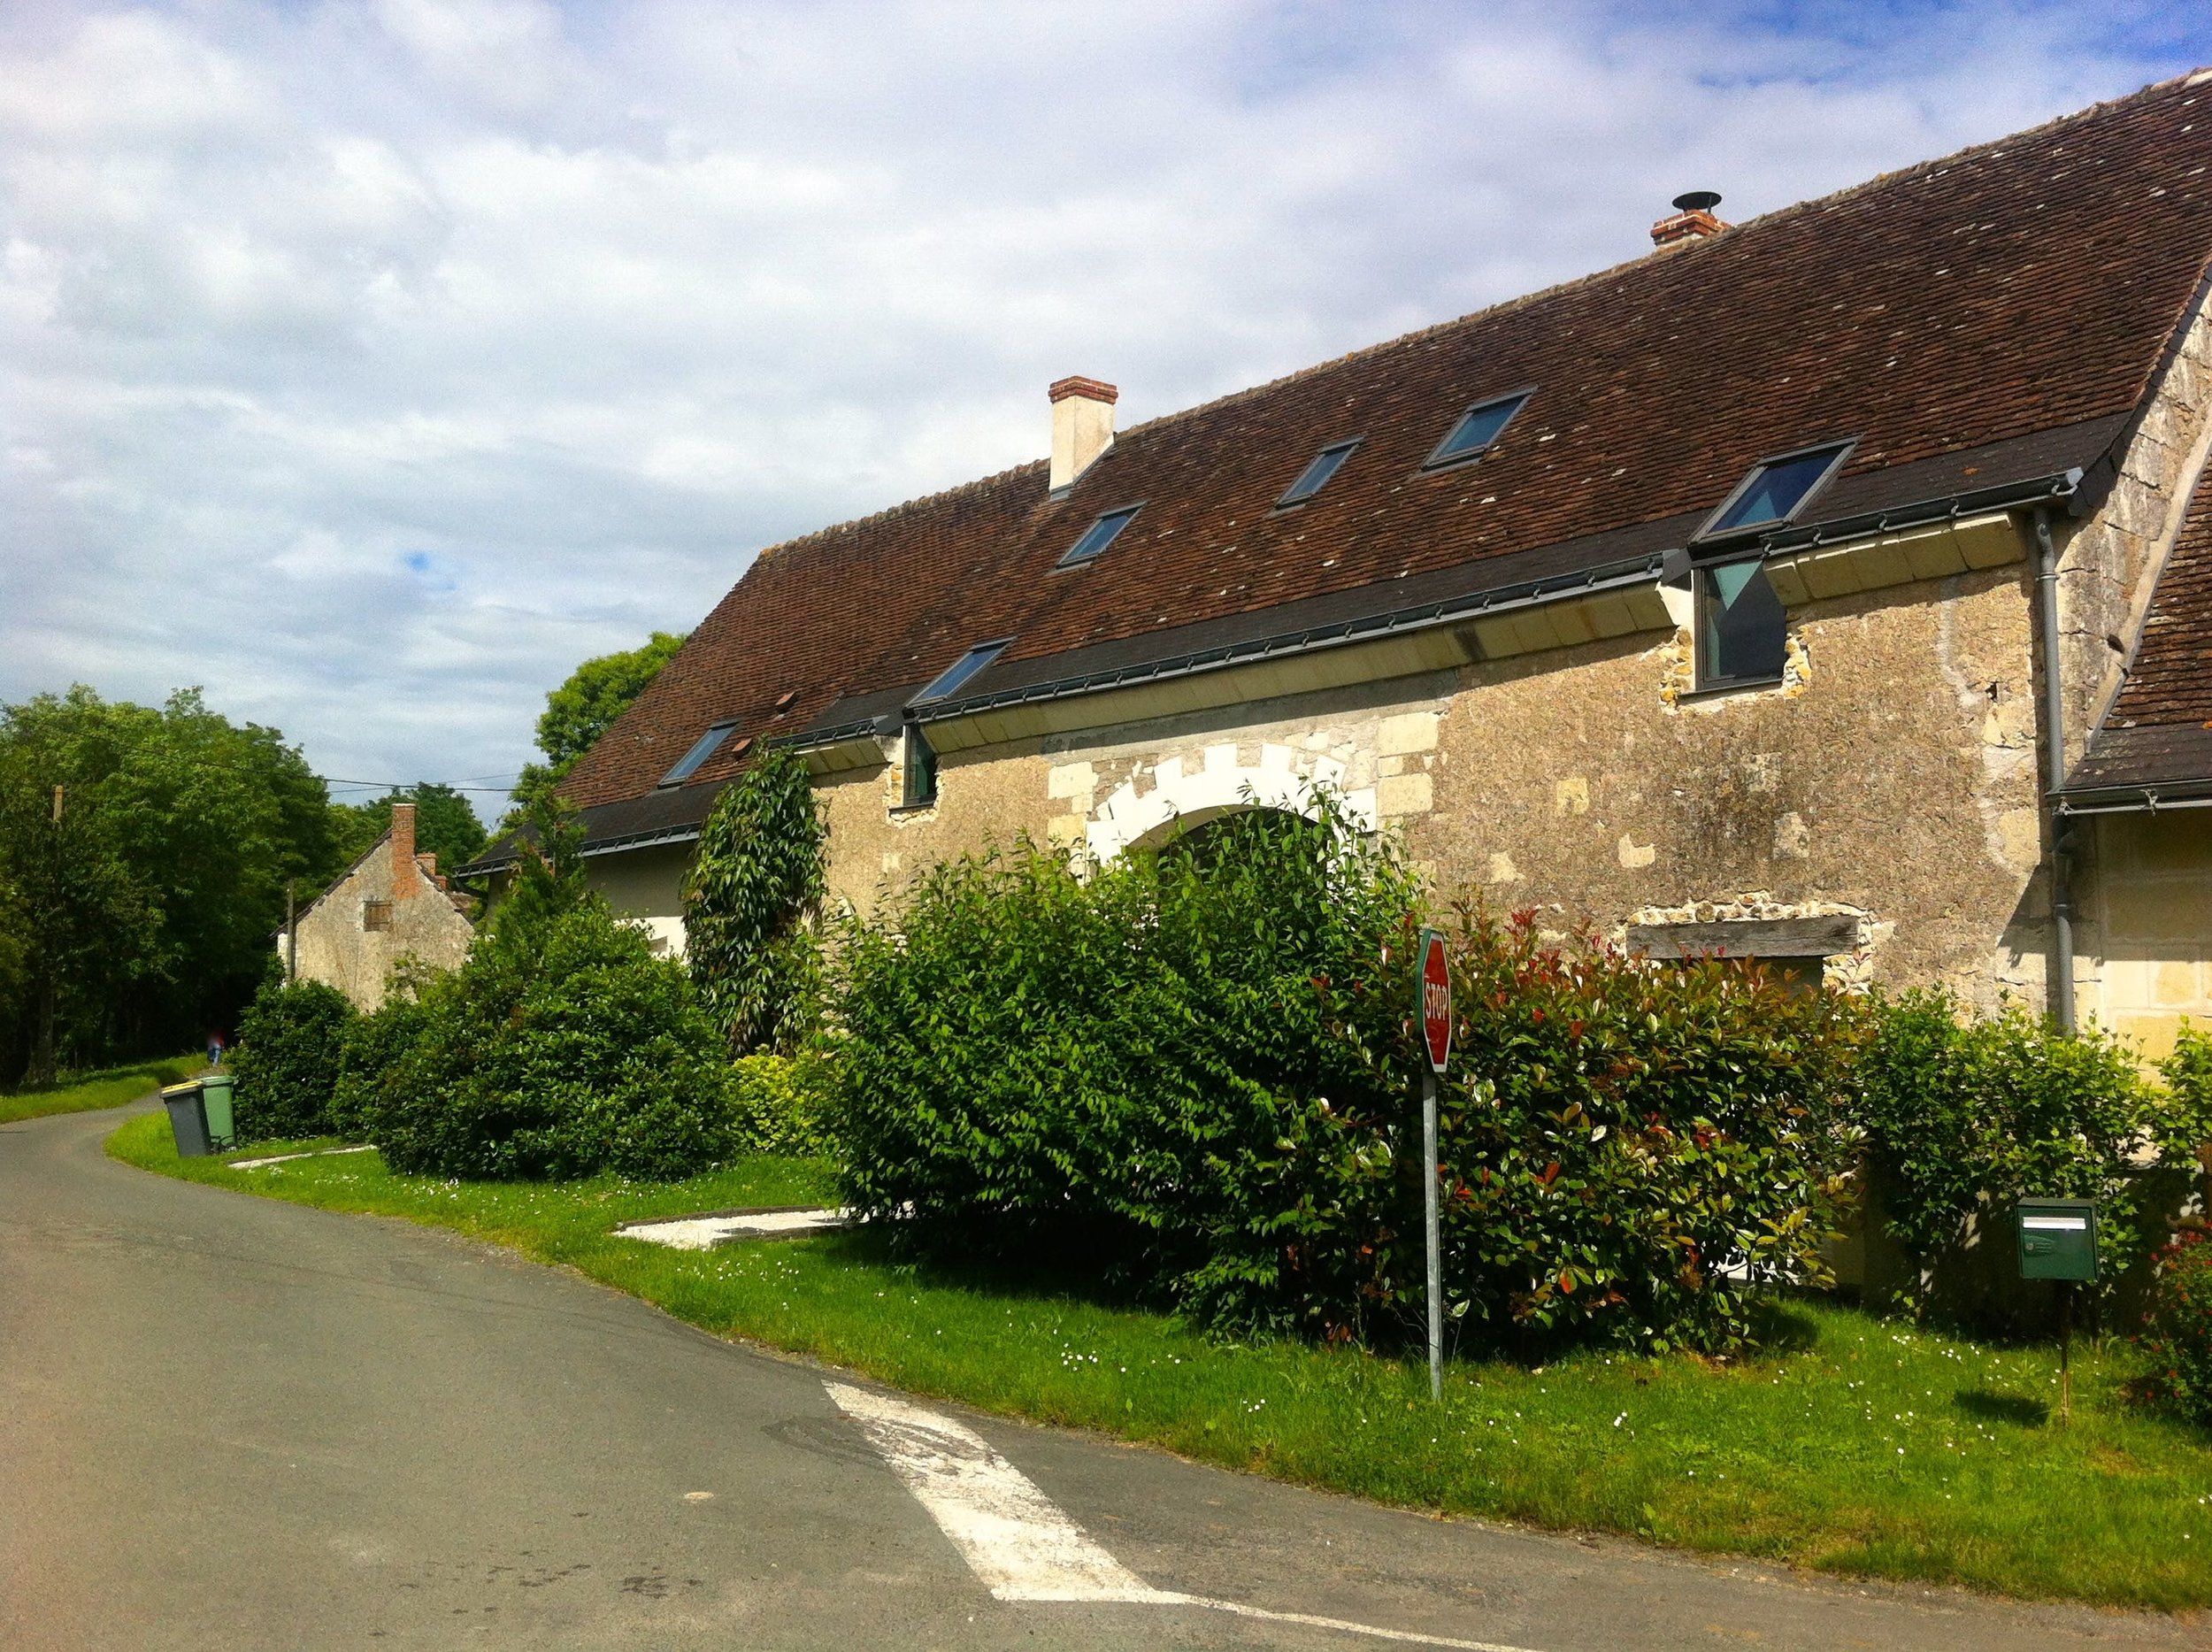 Leaving the picturesque and sleepy French Loire village